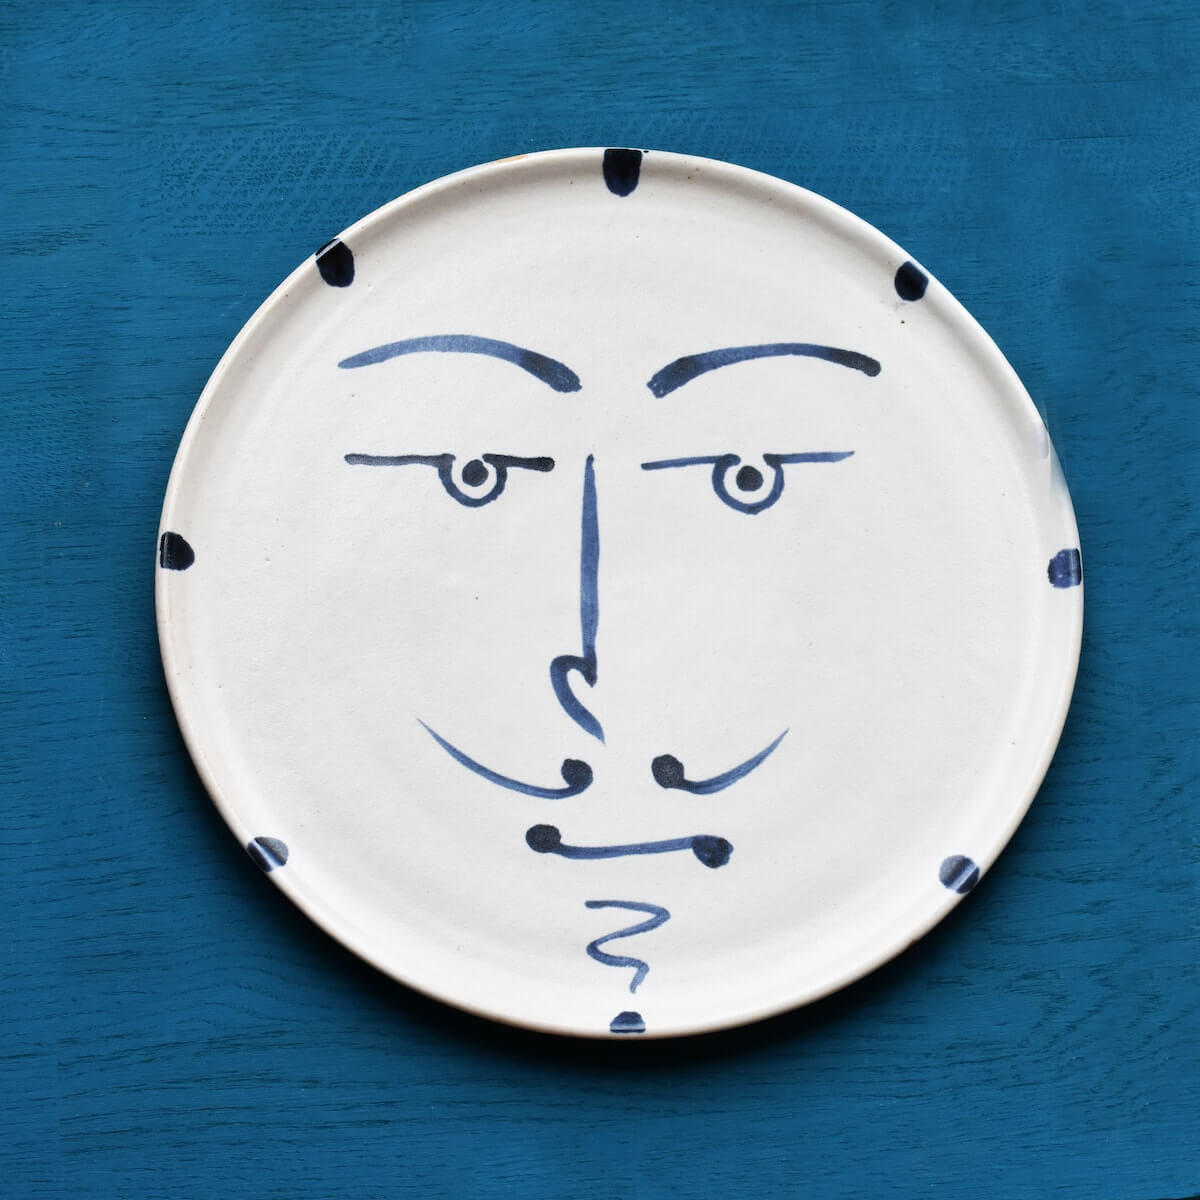 Santiago Wall plate by Kinkatou for AUTHOR's collection of British-made unique homeware